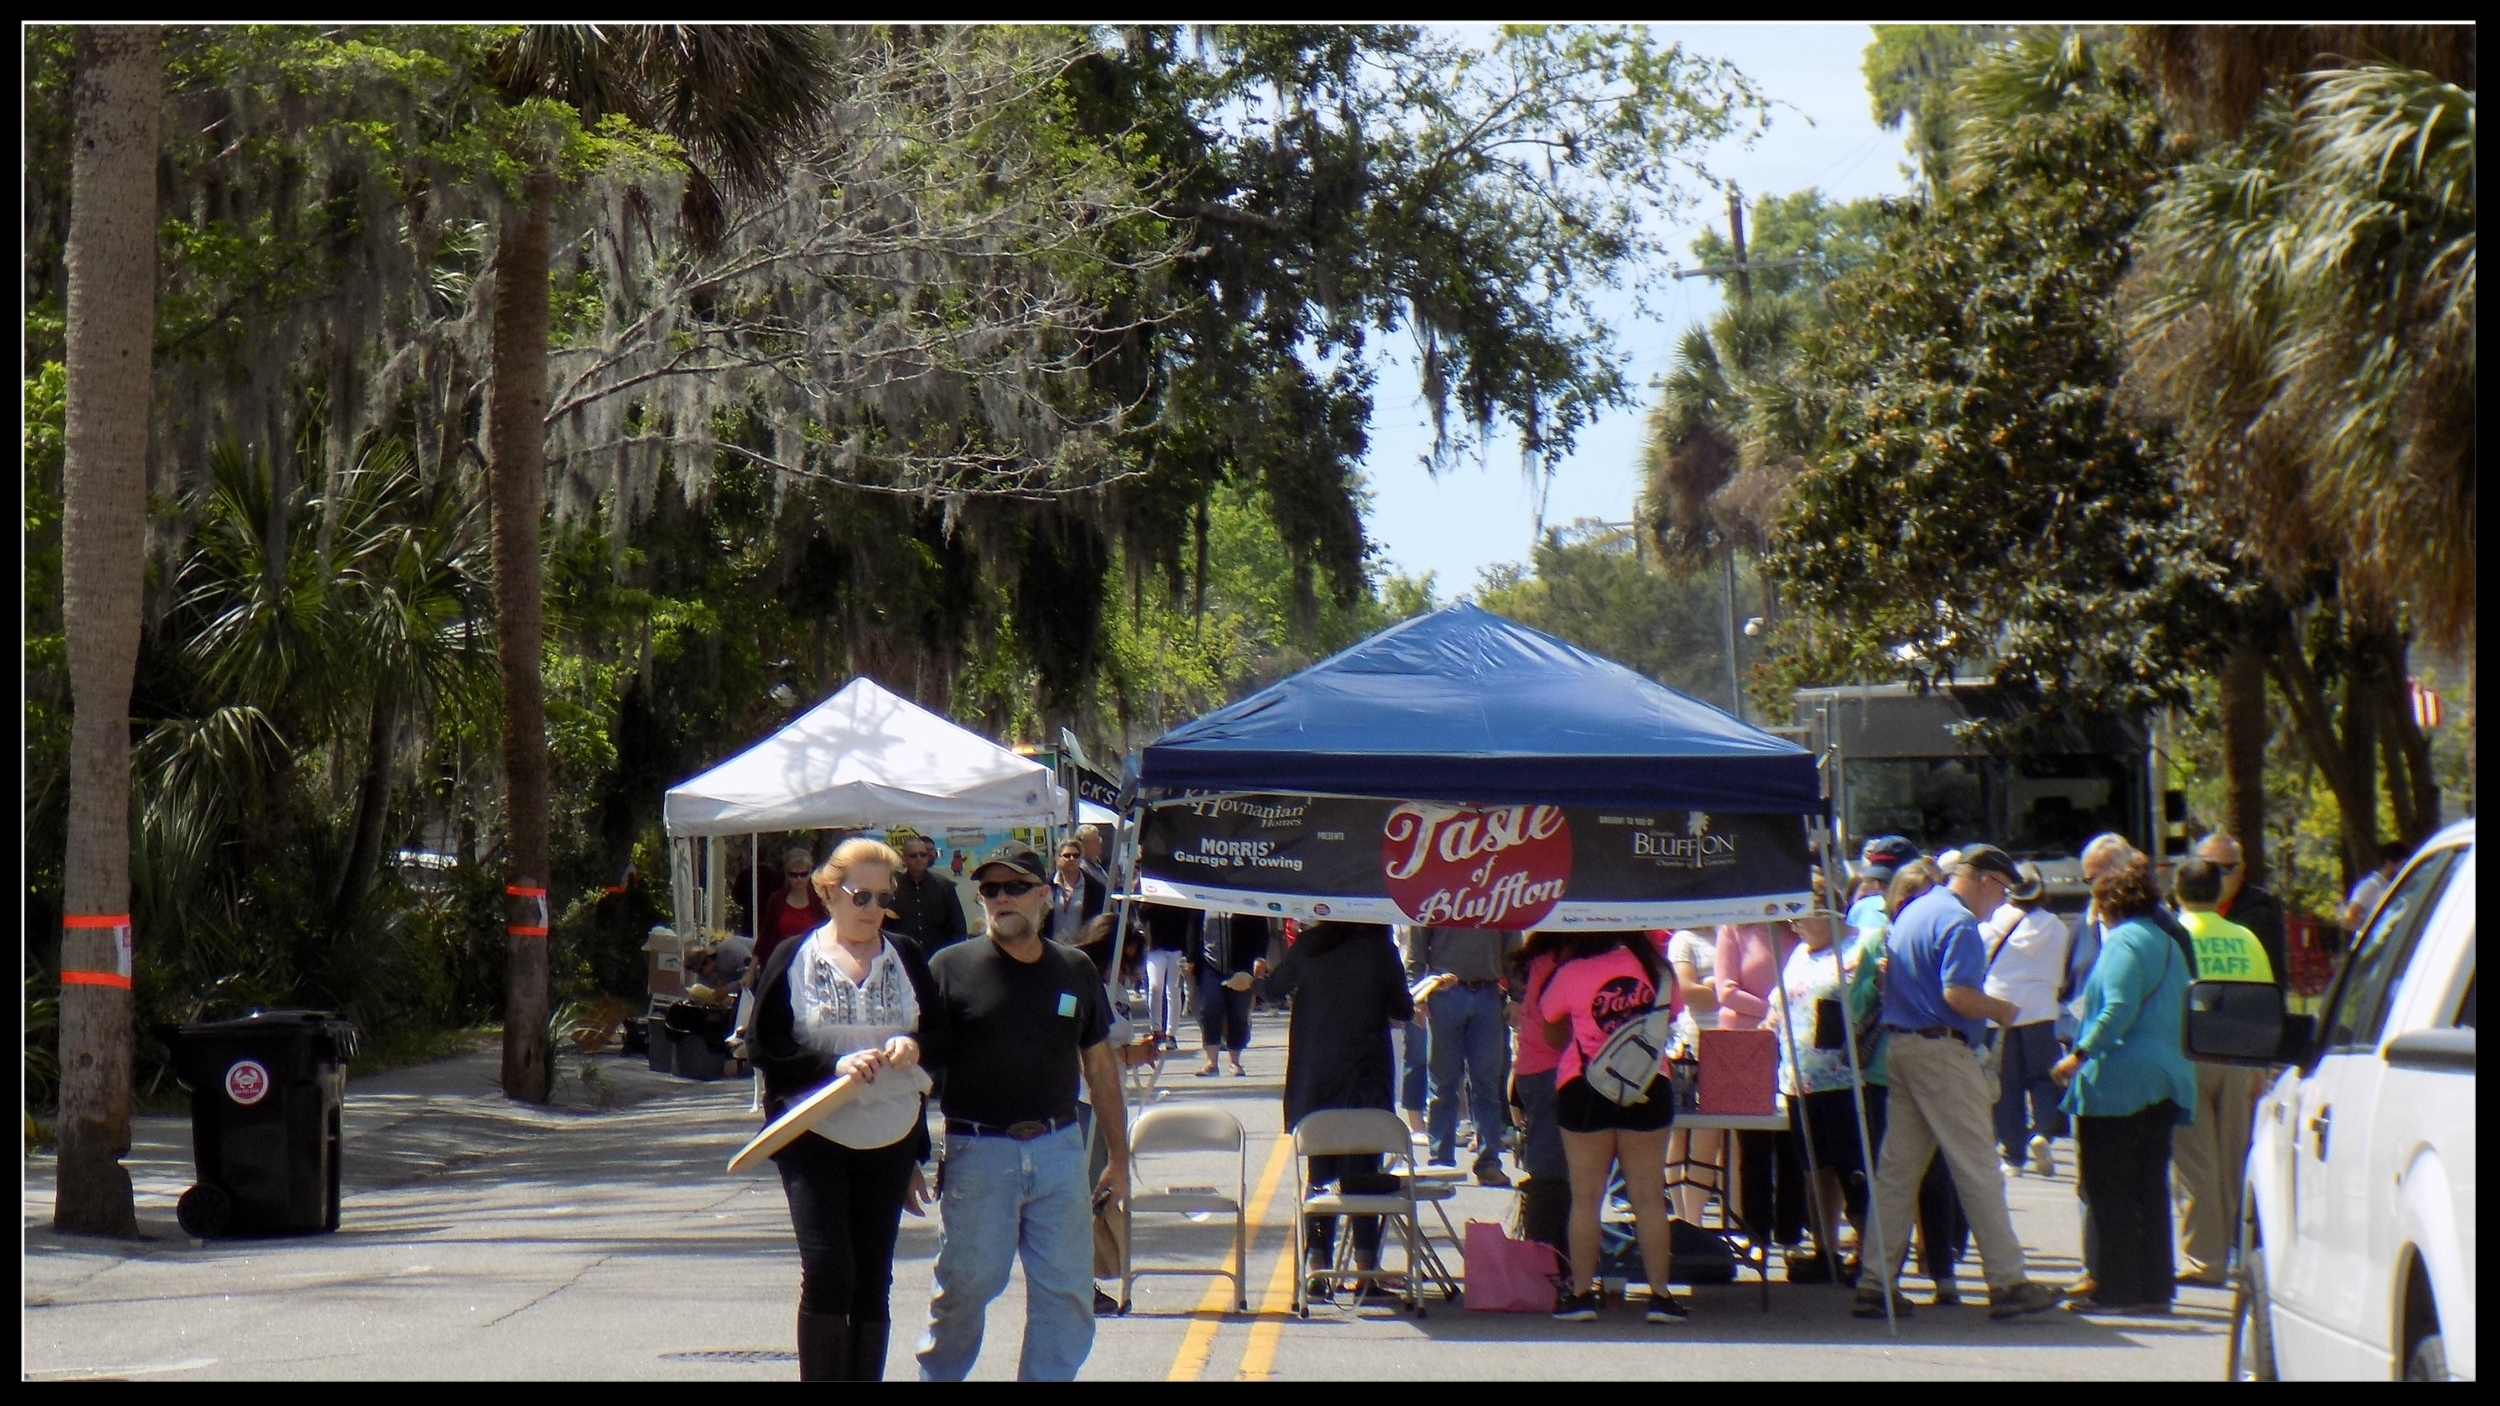 Entering the festival, which stretched down Calhoun Street in Old Town Bluffton.